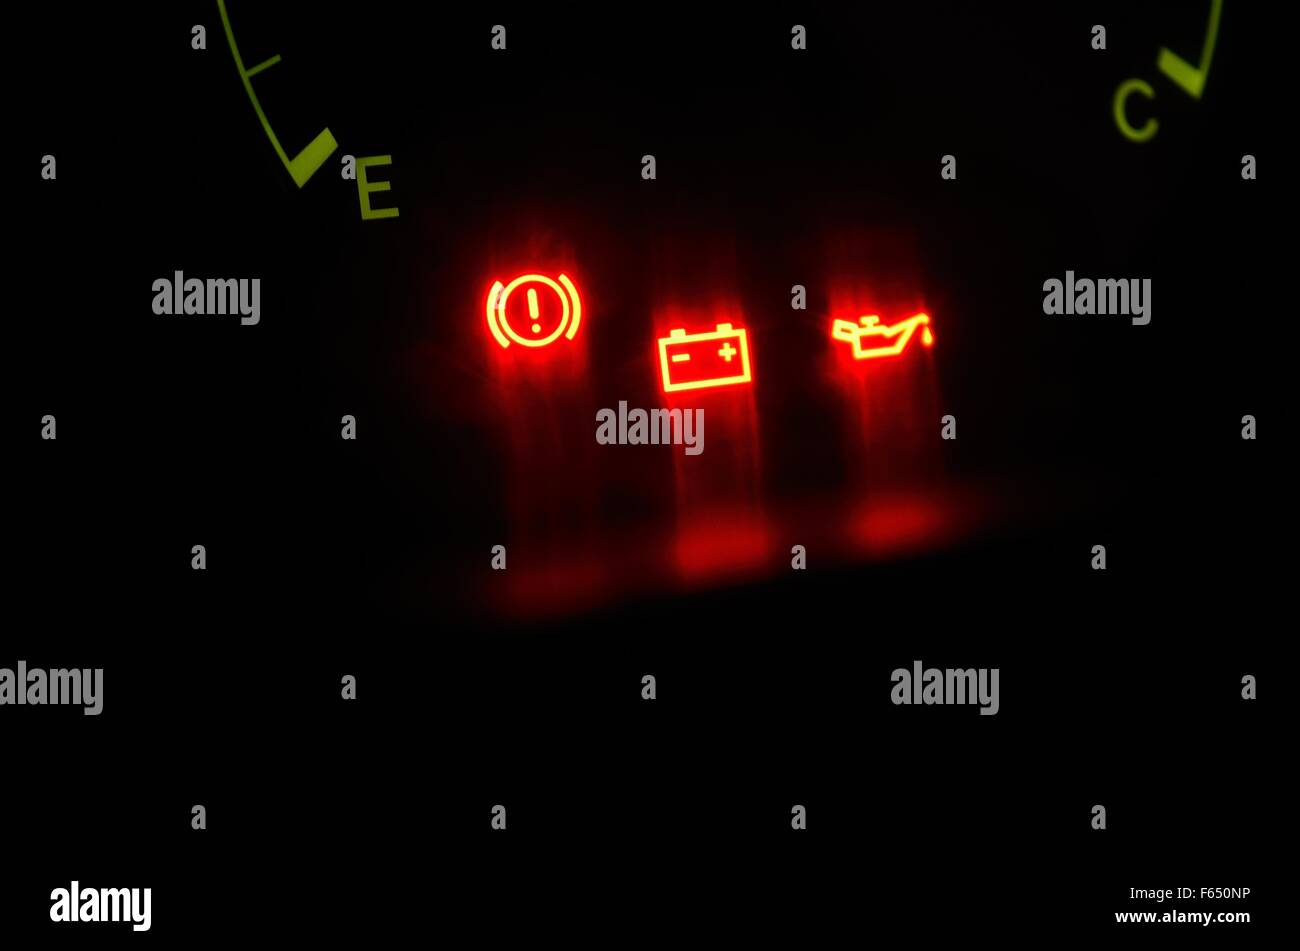 Oil, Emergency Brake And Battery Warning Lights On Car Dashboard